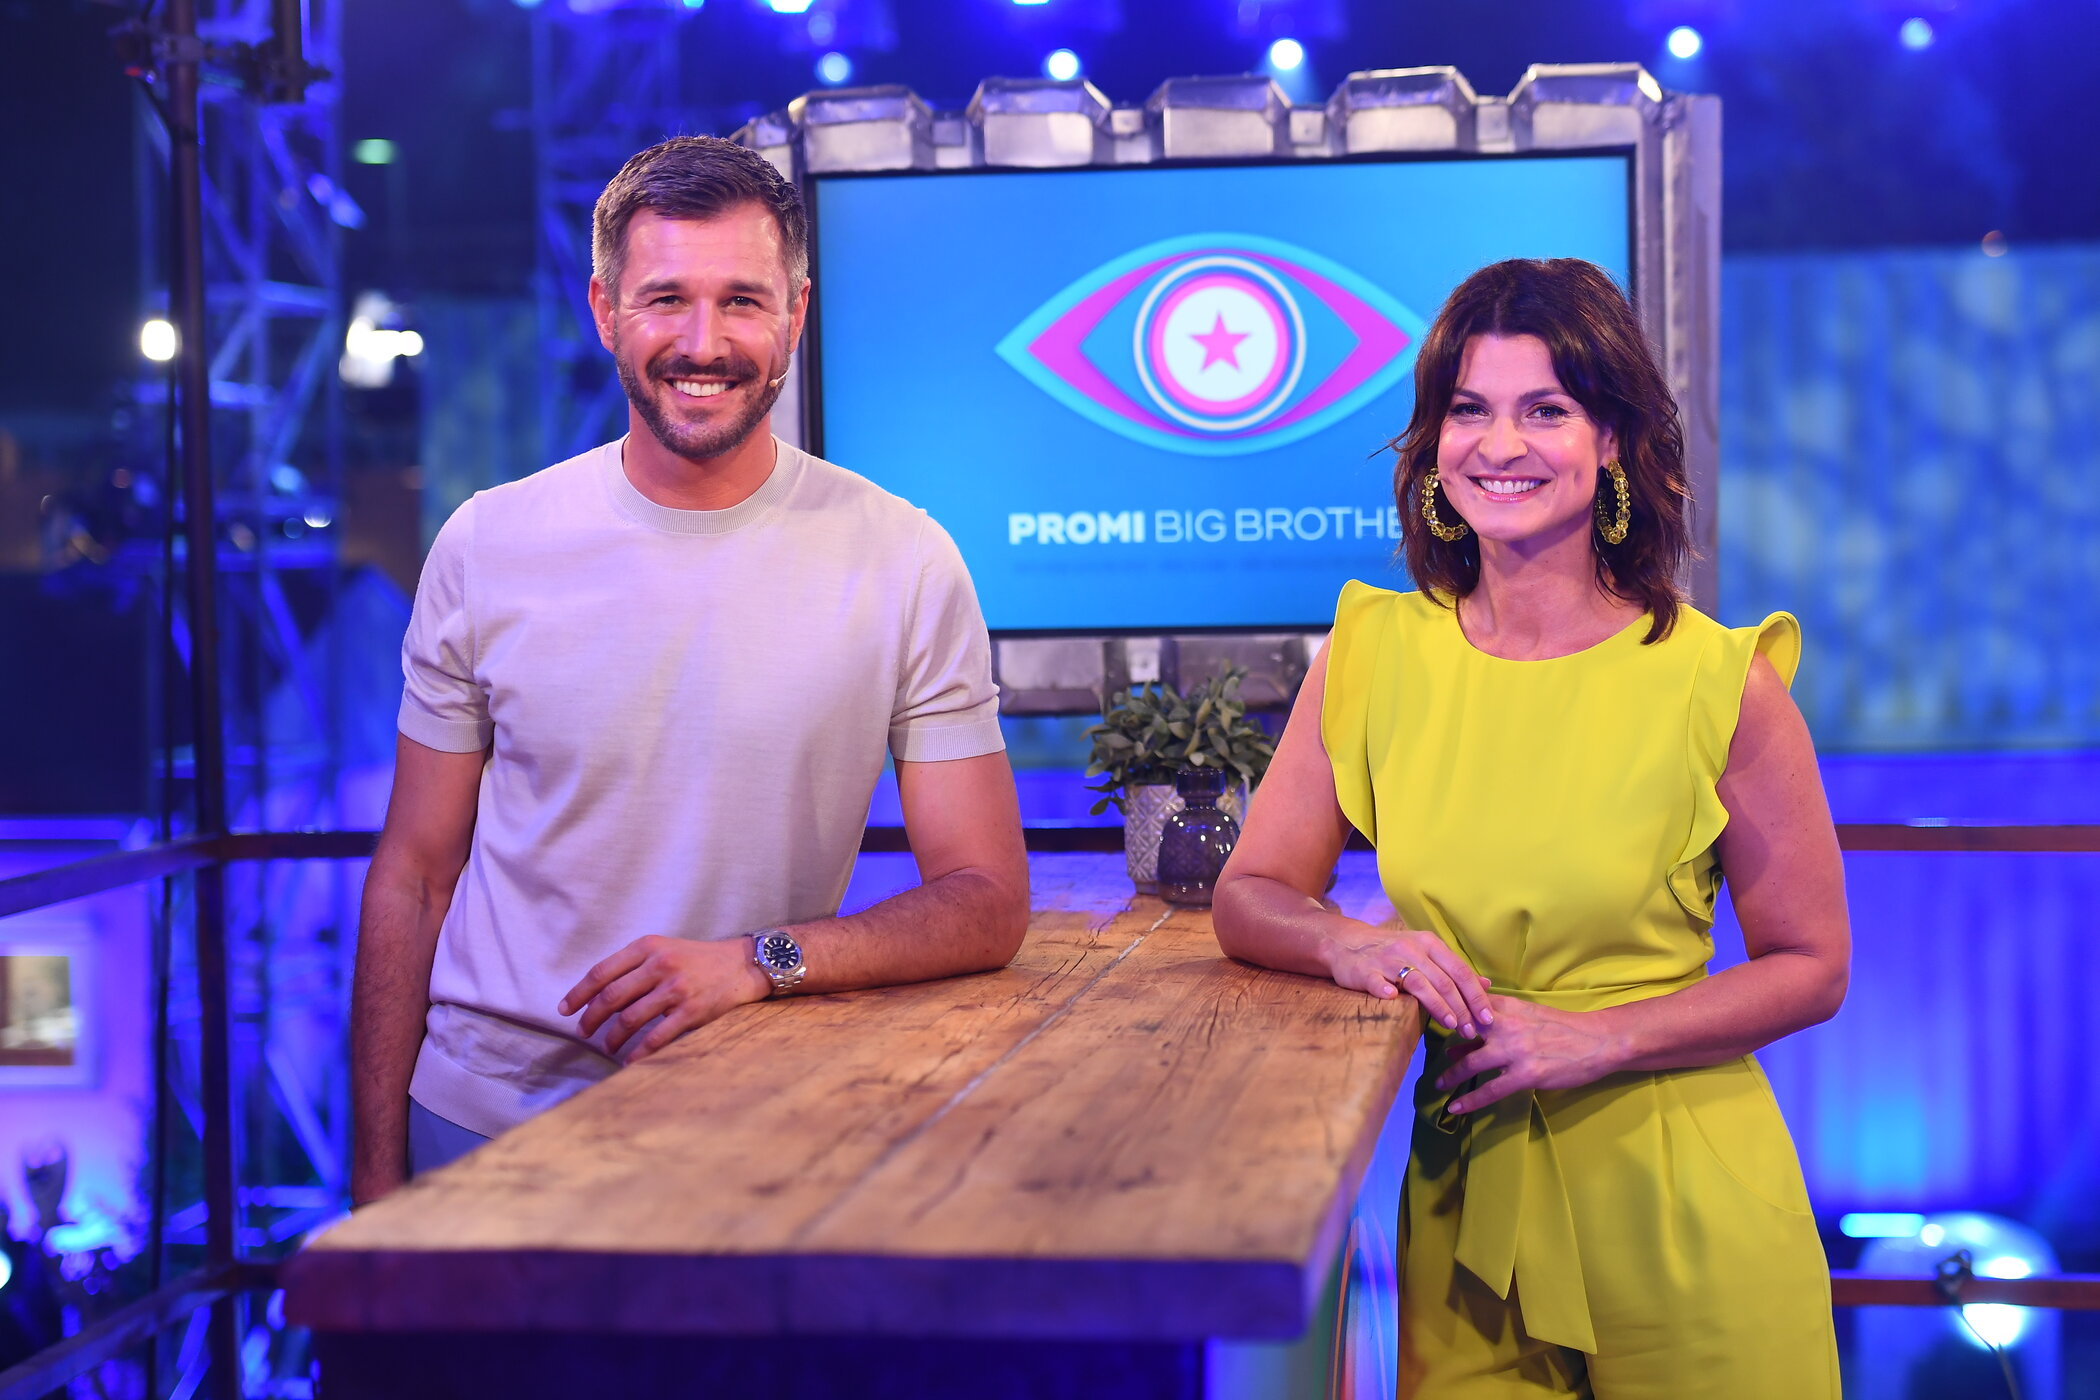 Promi Big Brother 2020 Sendezeiten